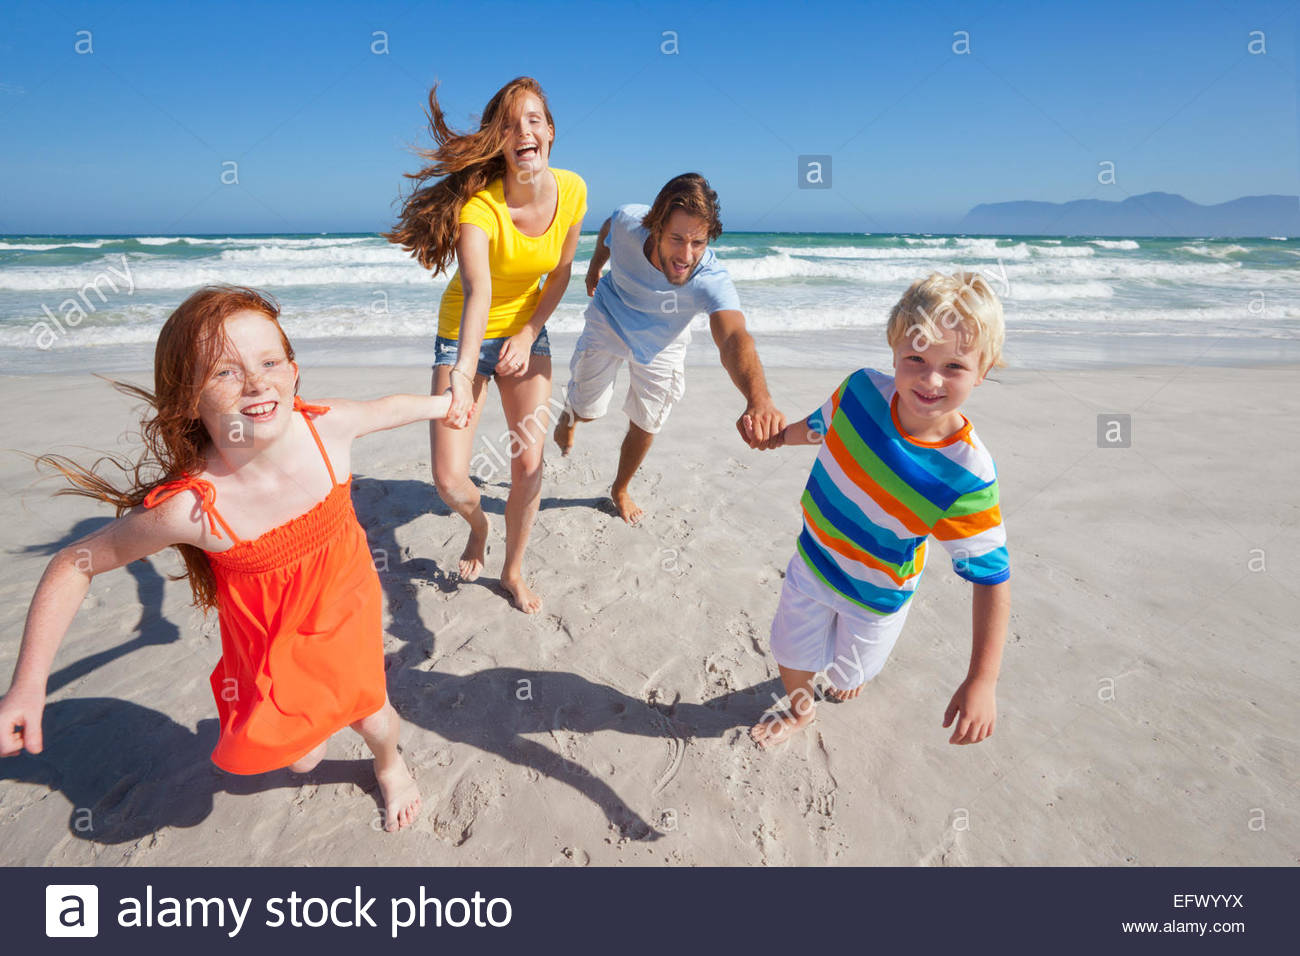 Happy family smiling at camera, holding hands, on sunny beach - Stock Image